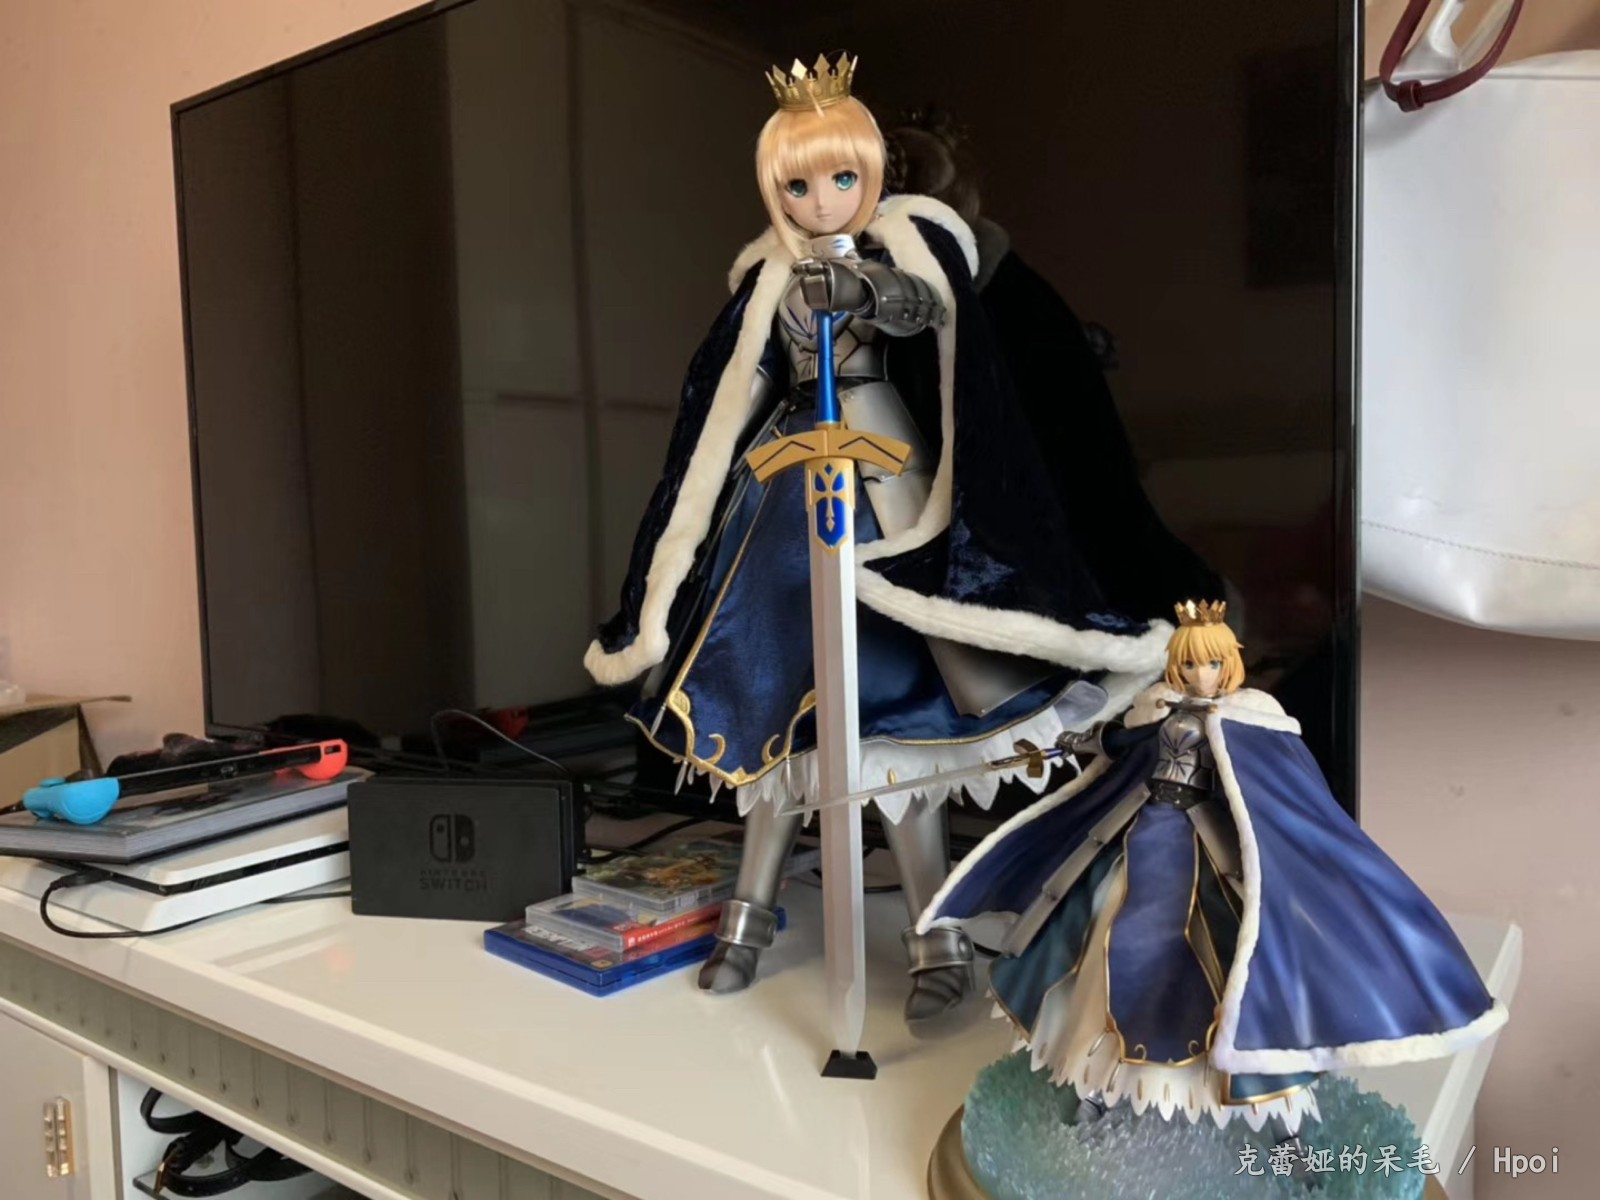 Dollfie Dream Fate/Grand Order Saber-Garage Kit Dolls